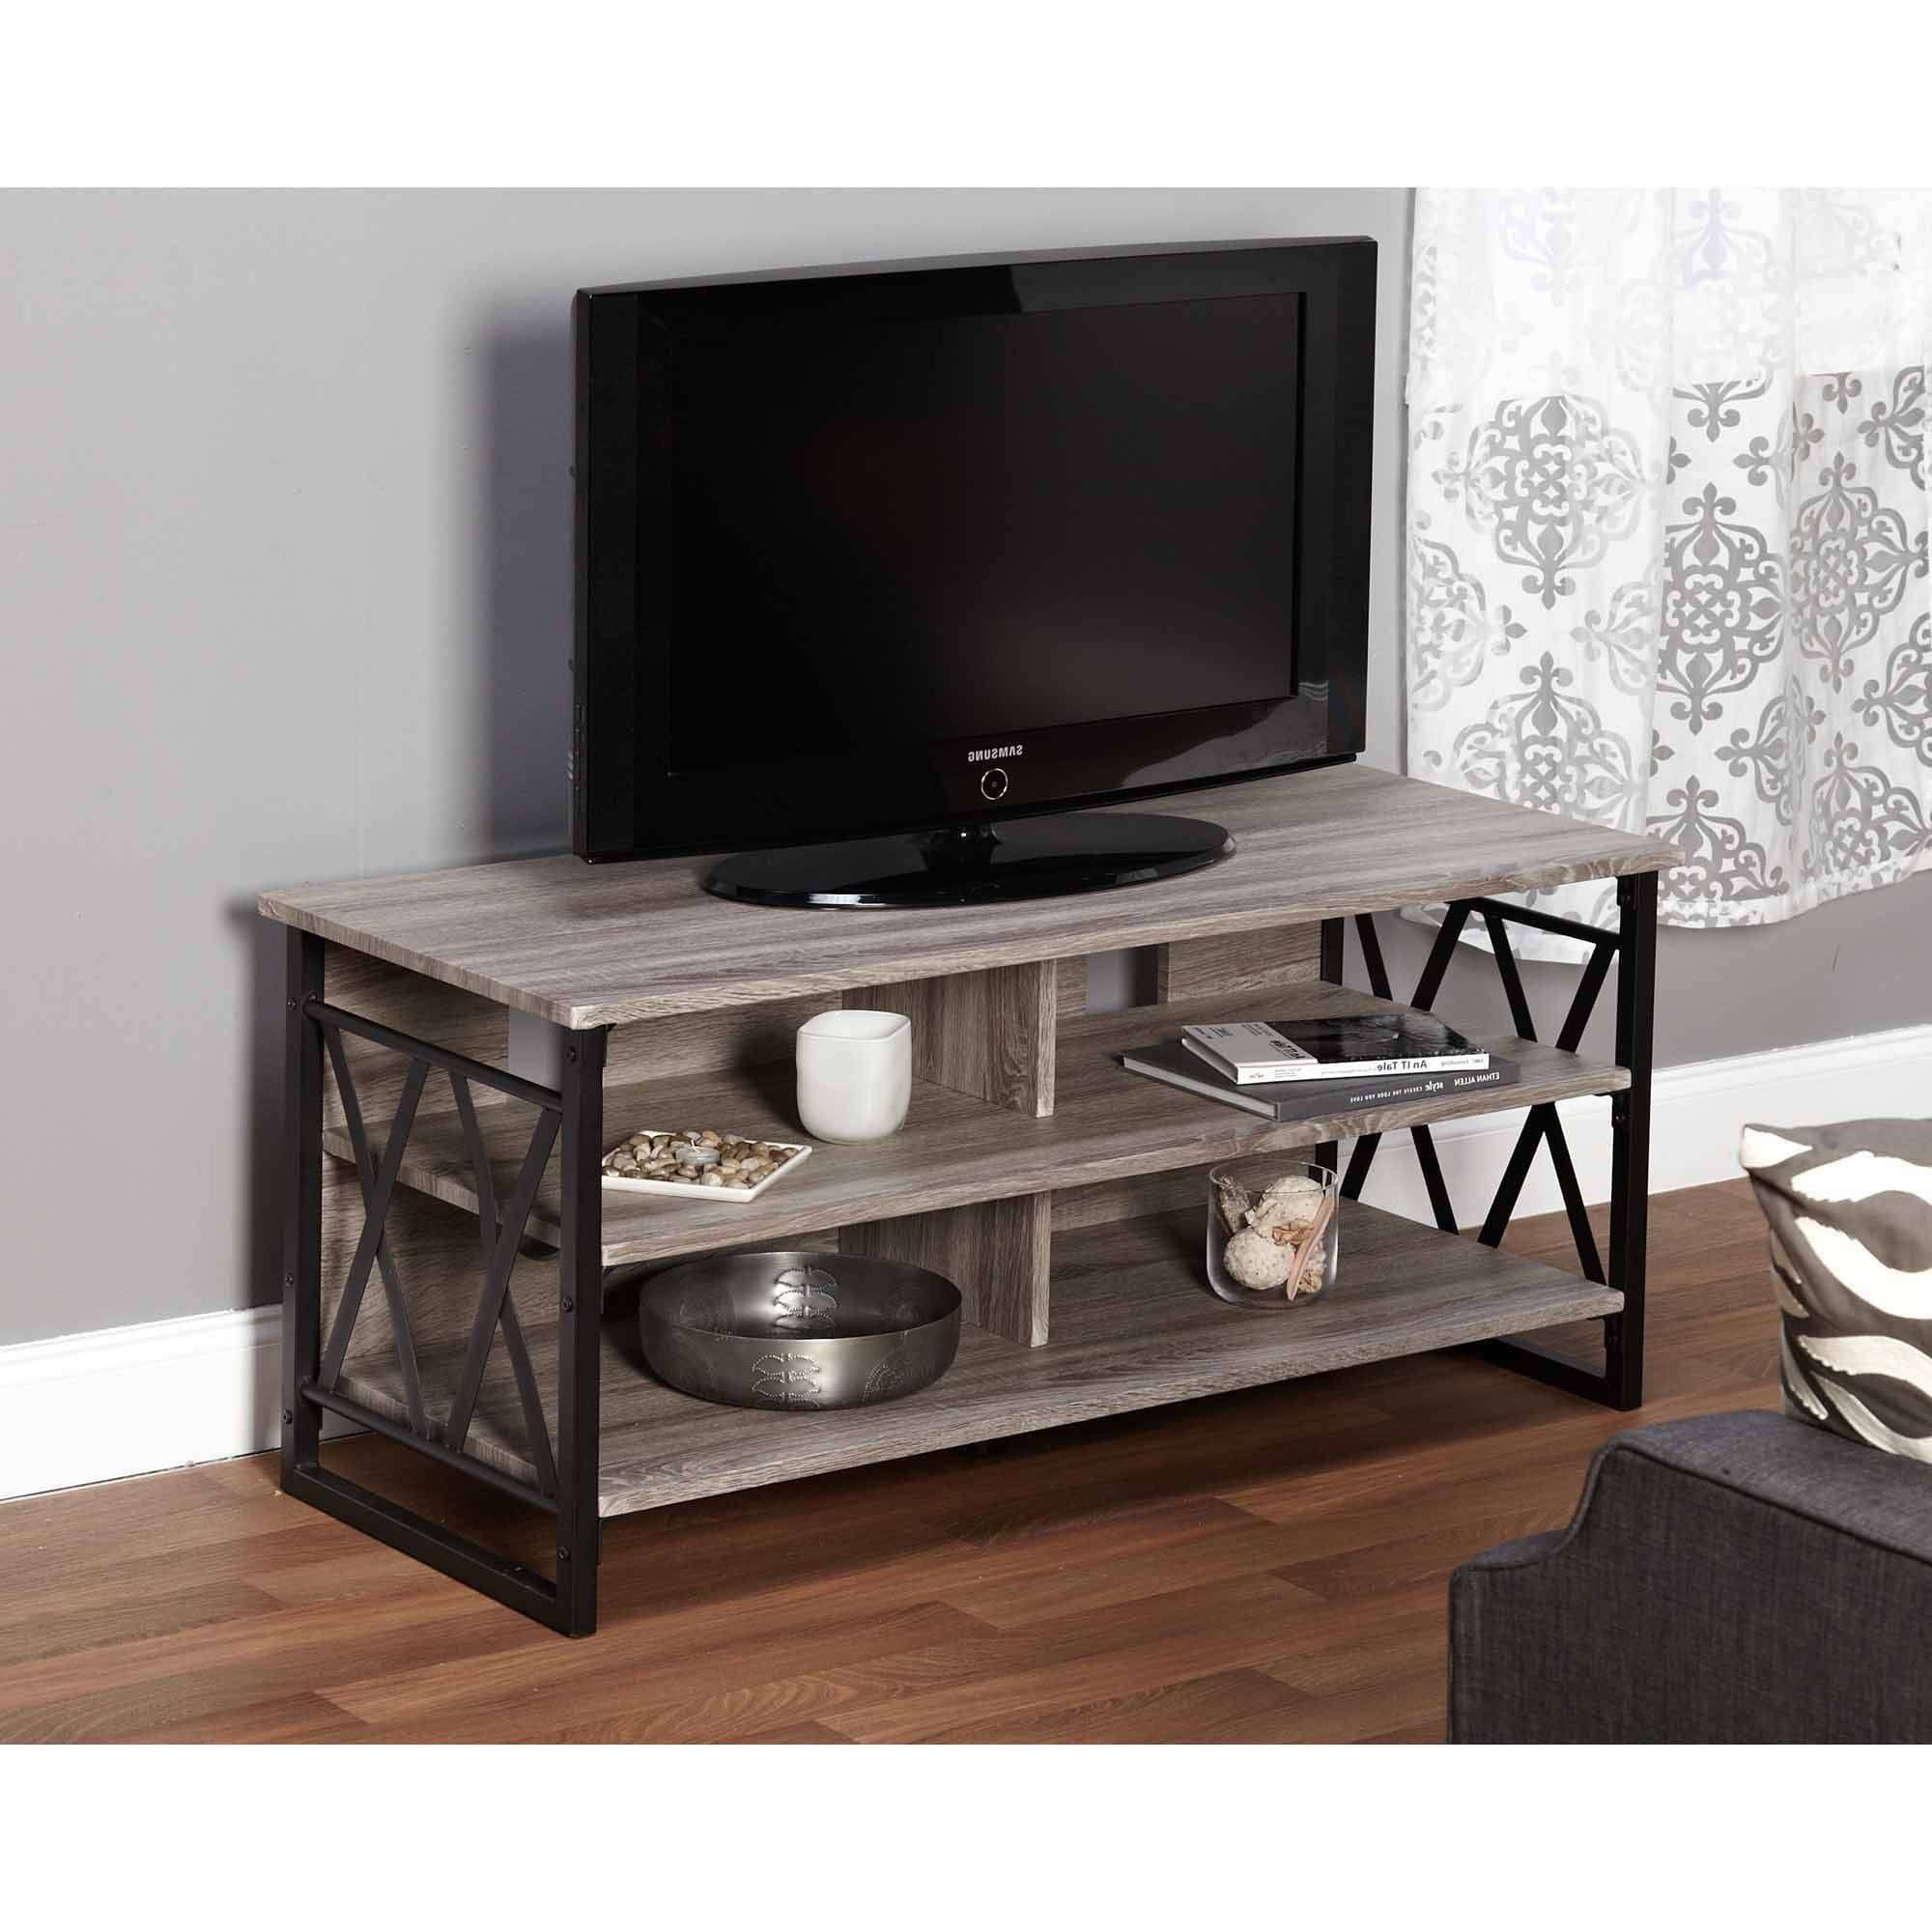 Living ~ Ikea Tv Stand Recall Tv Stand 36 Inches High Corner Tv Regarding White Rustic Tv Stands (View 15 of 15)